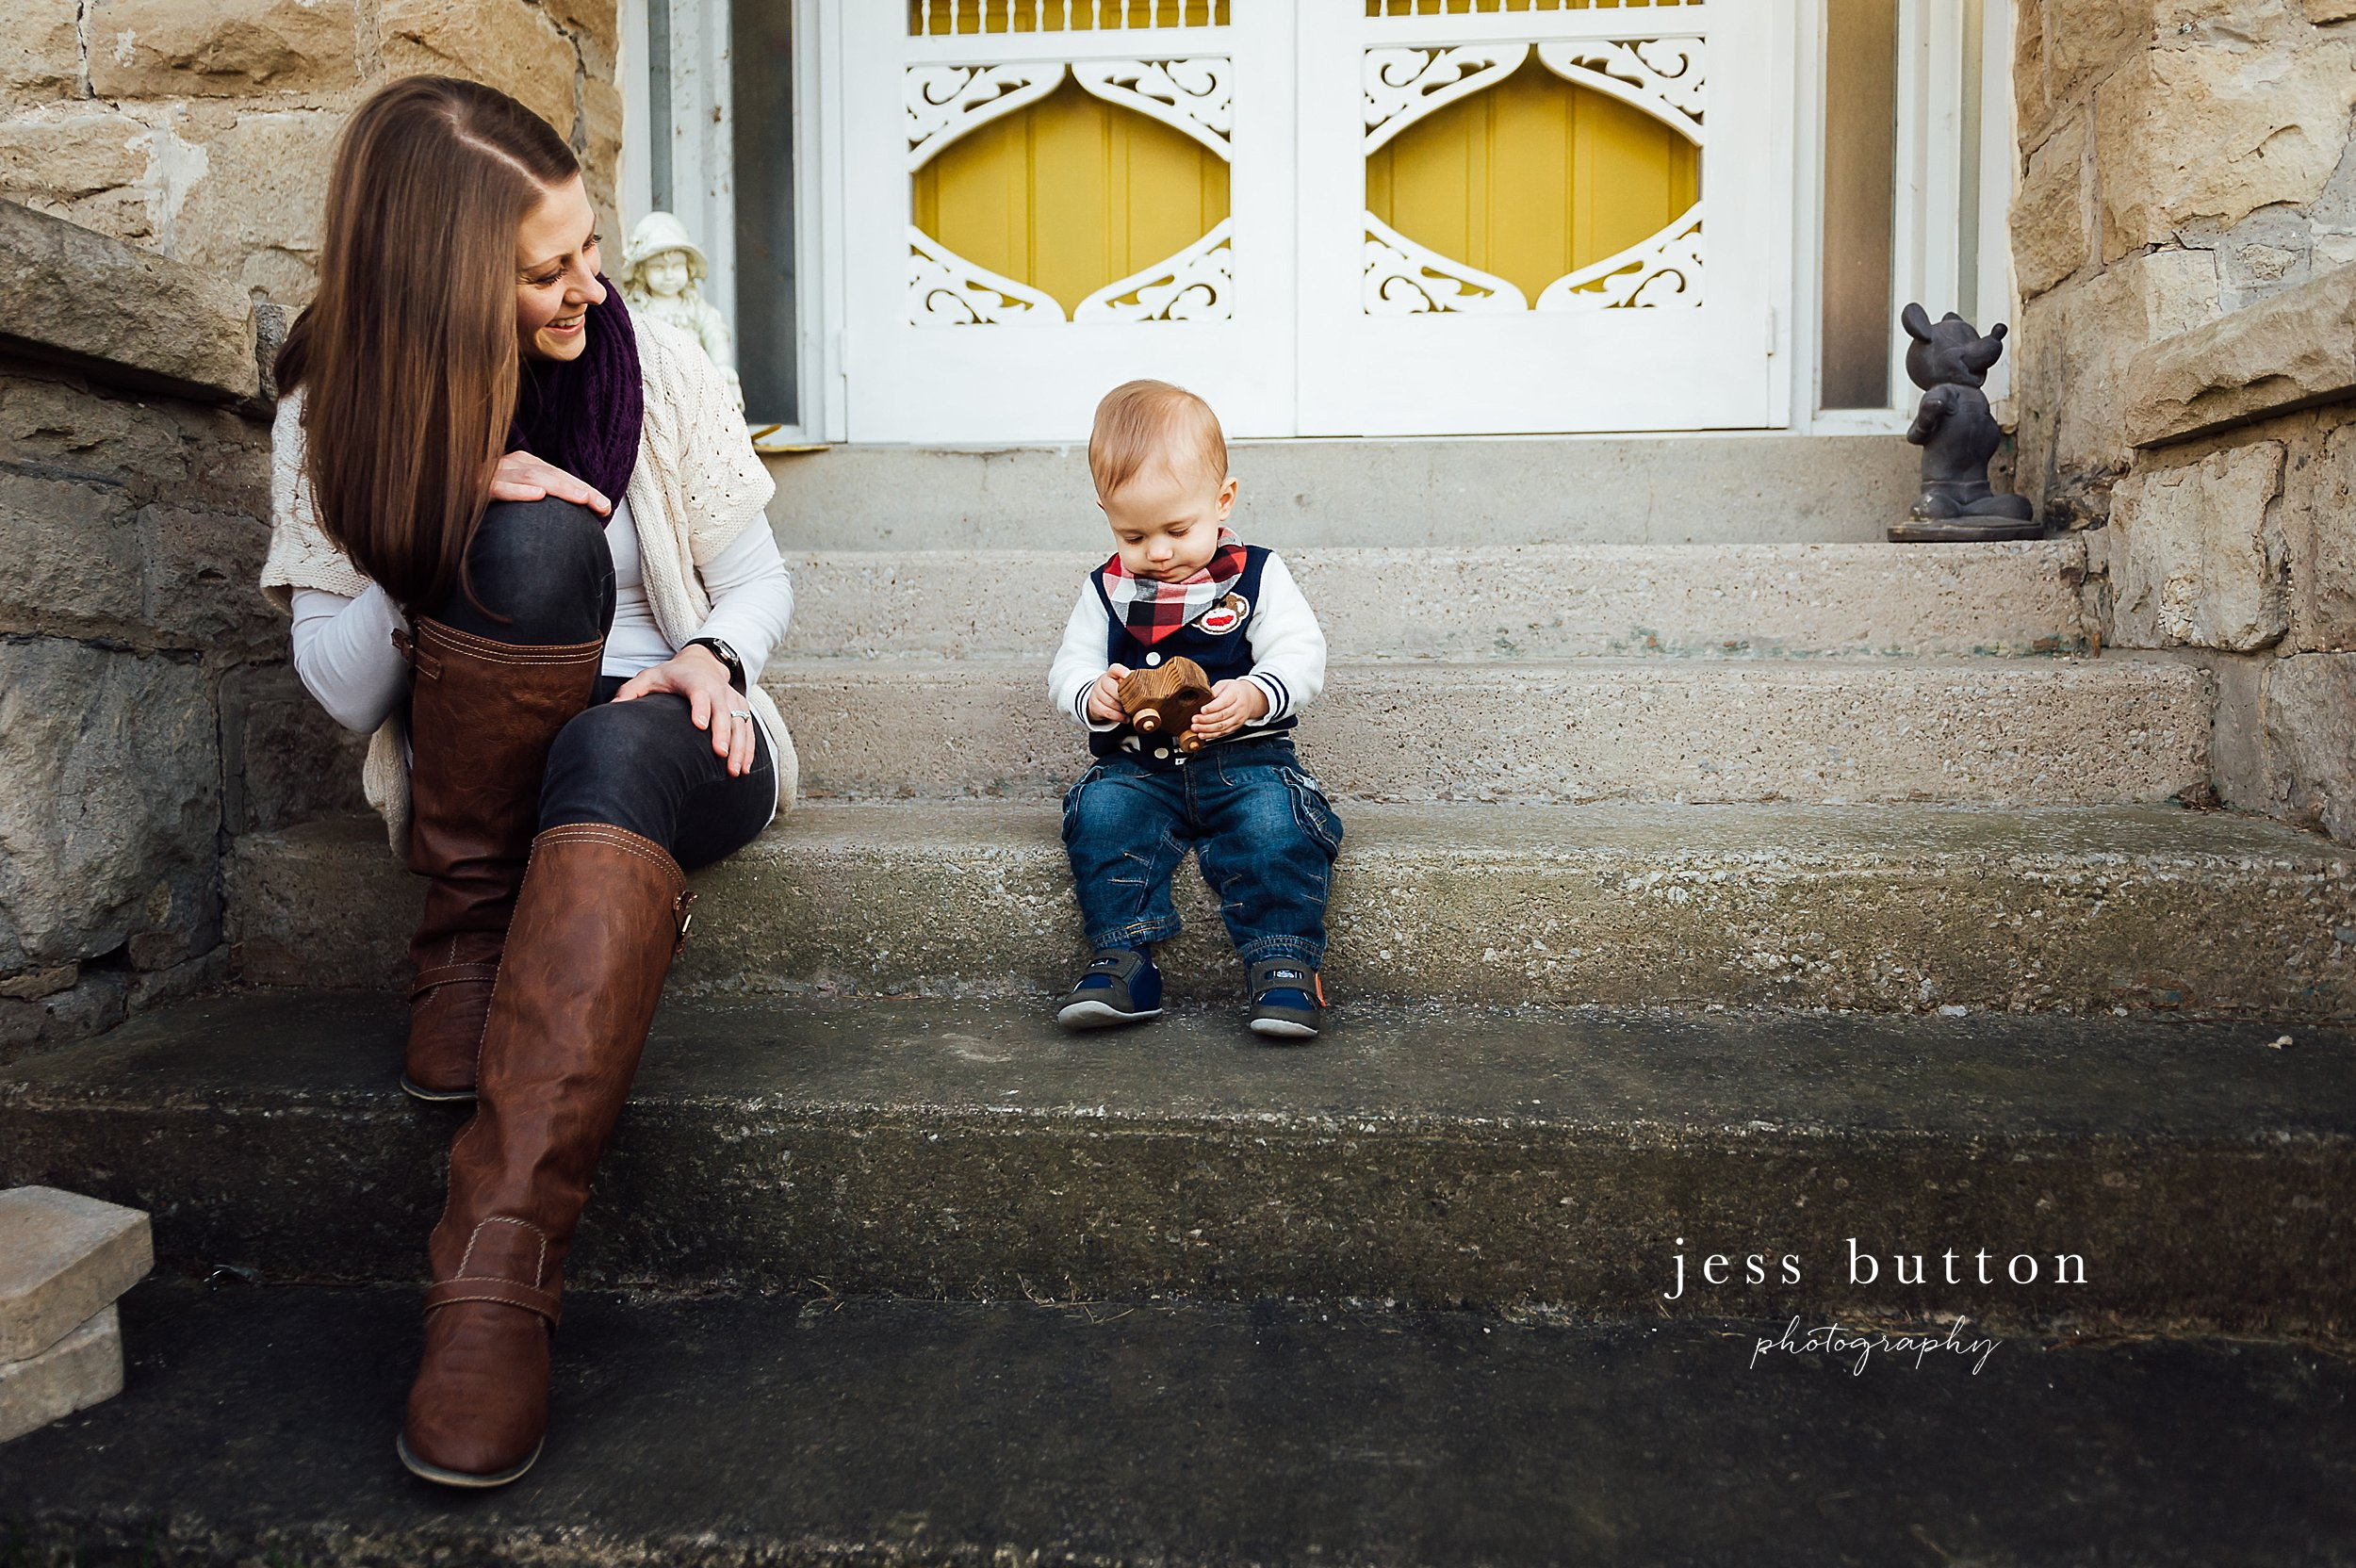 Niagara Family Photographer - photos at home in St Catharines - 10 month old baby bot on front porch in front of yellow door